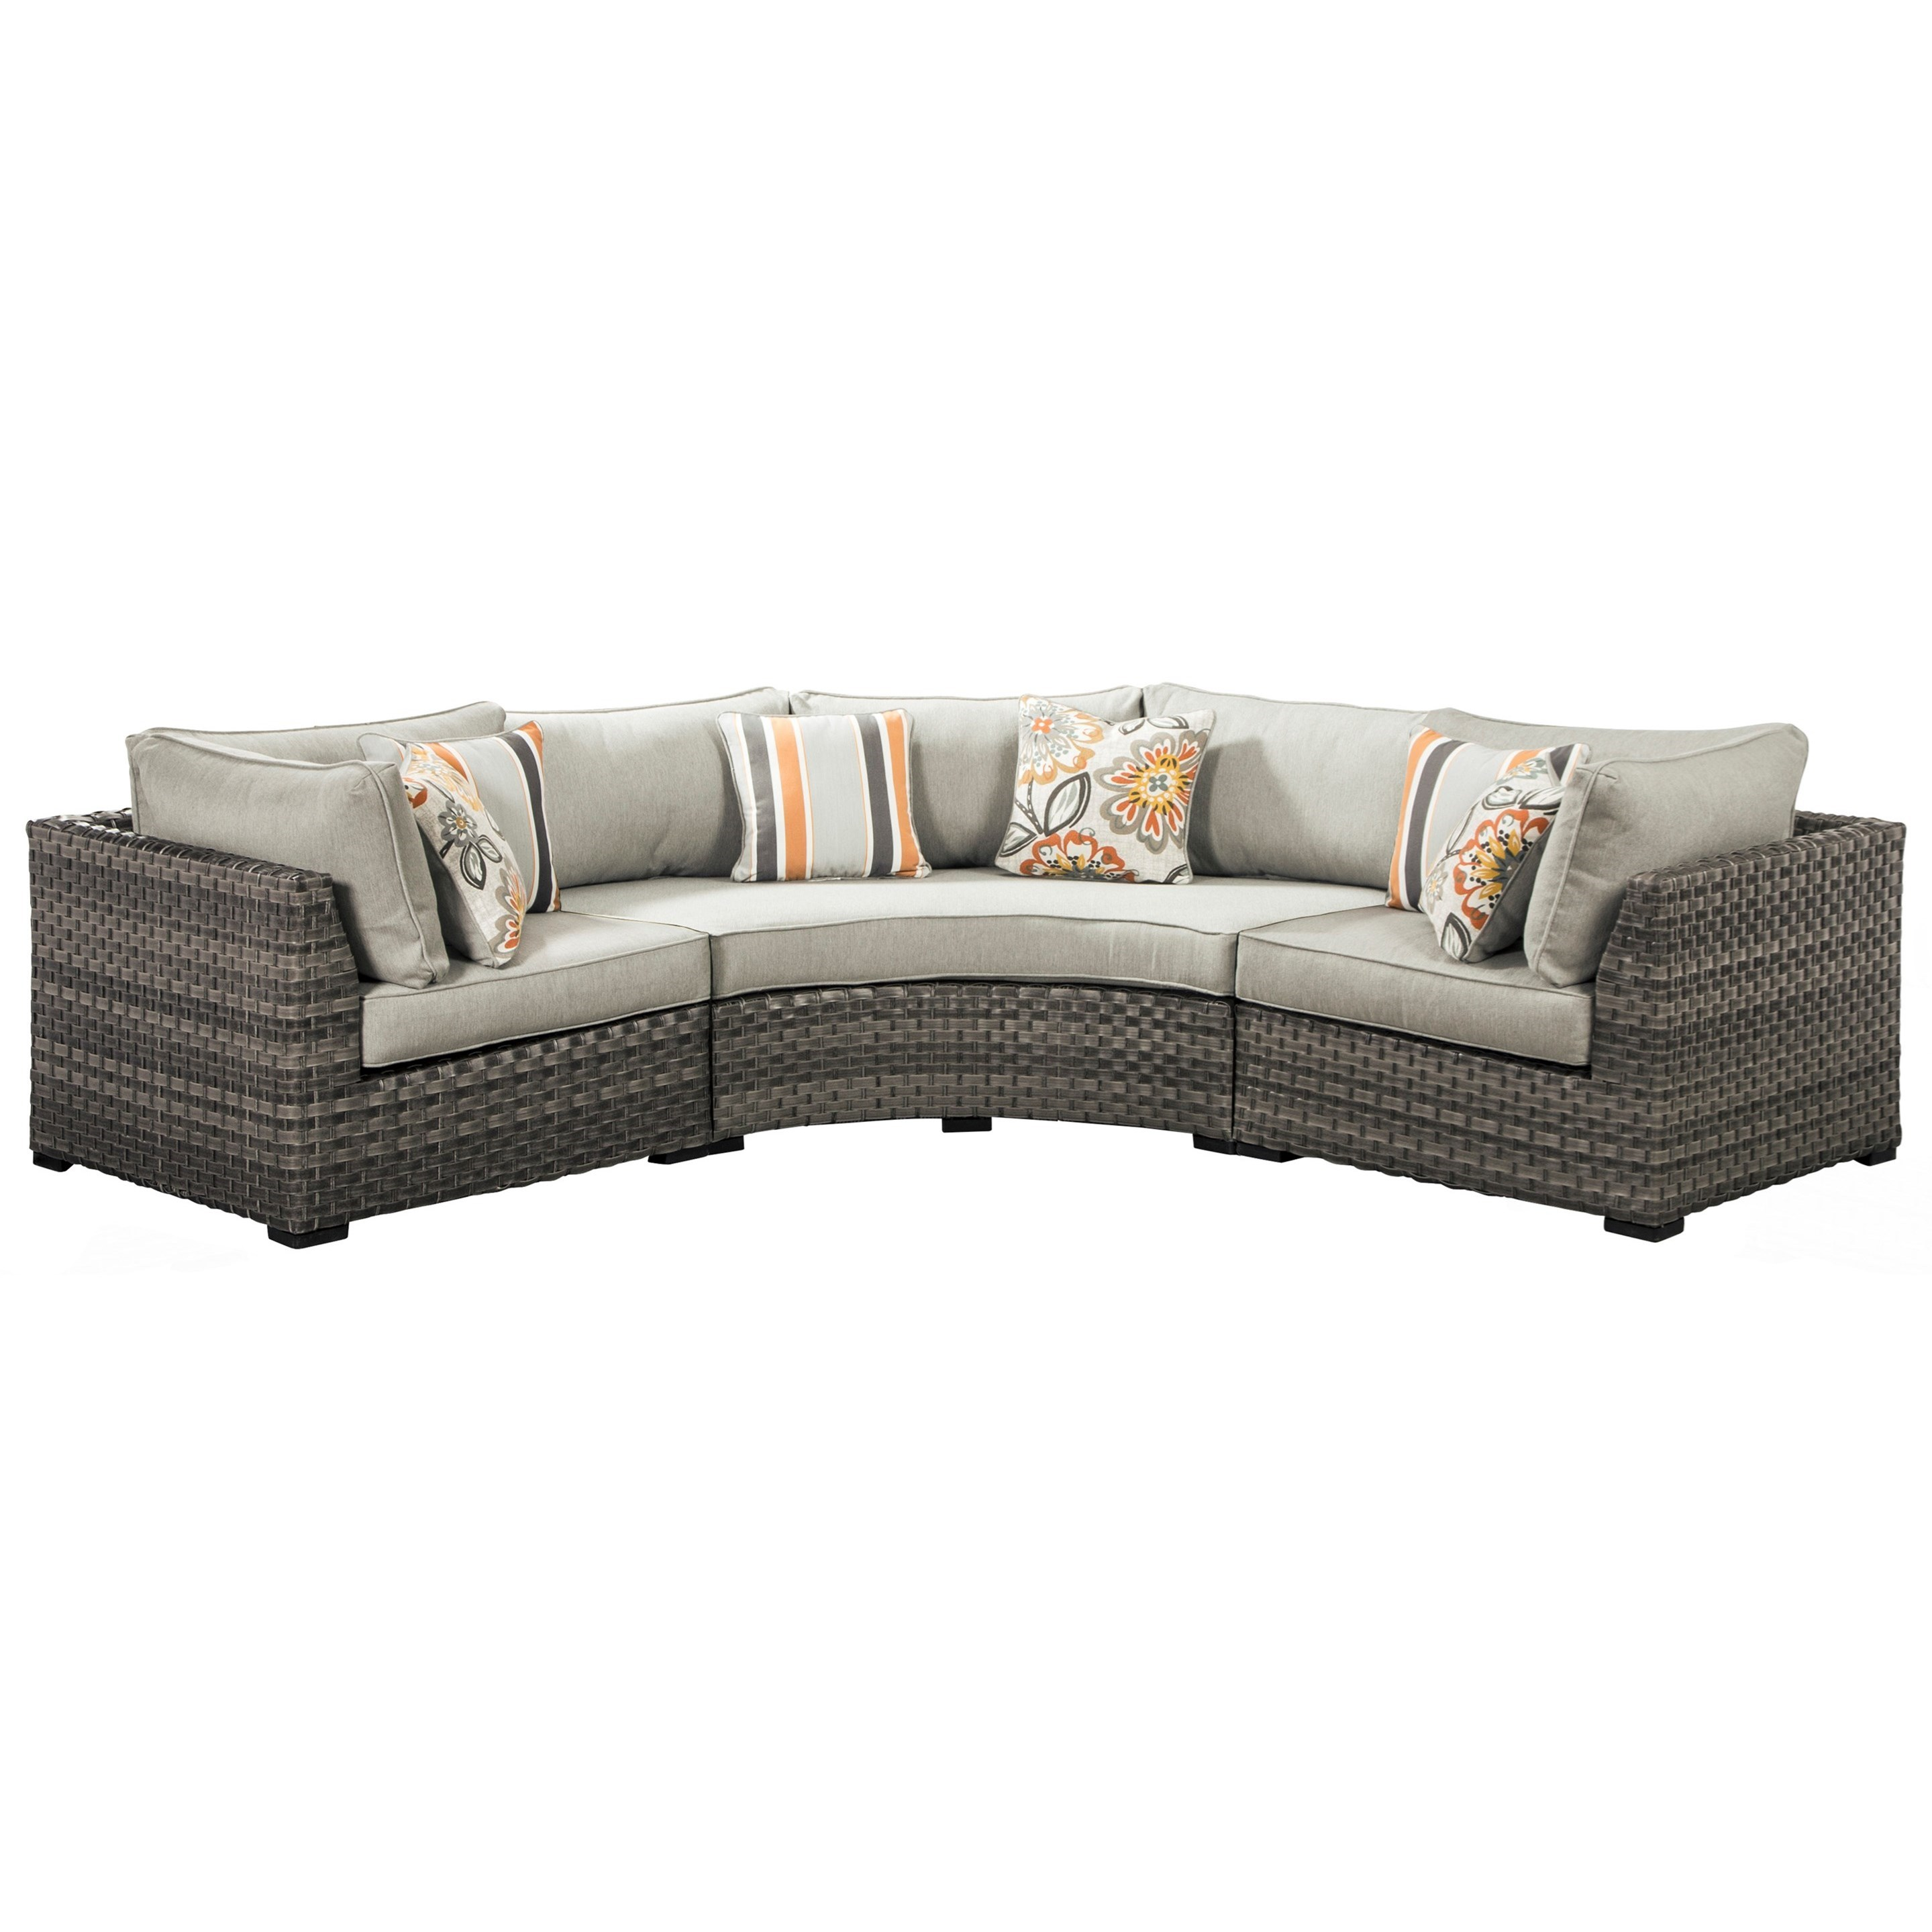 Curved Corner Sectional with Cushions